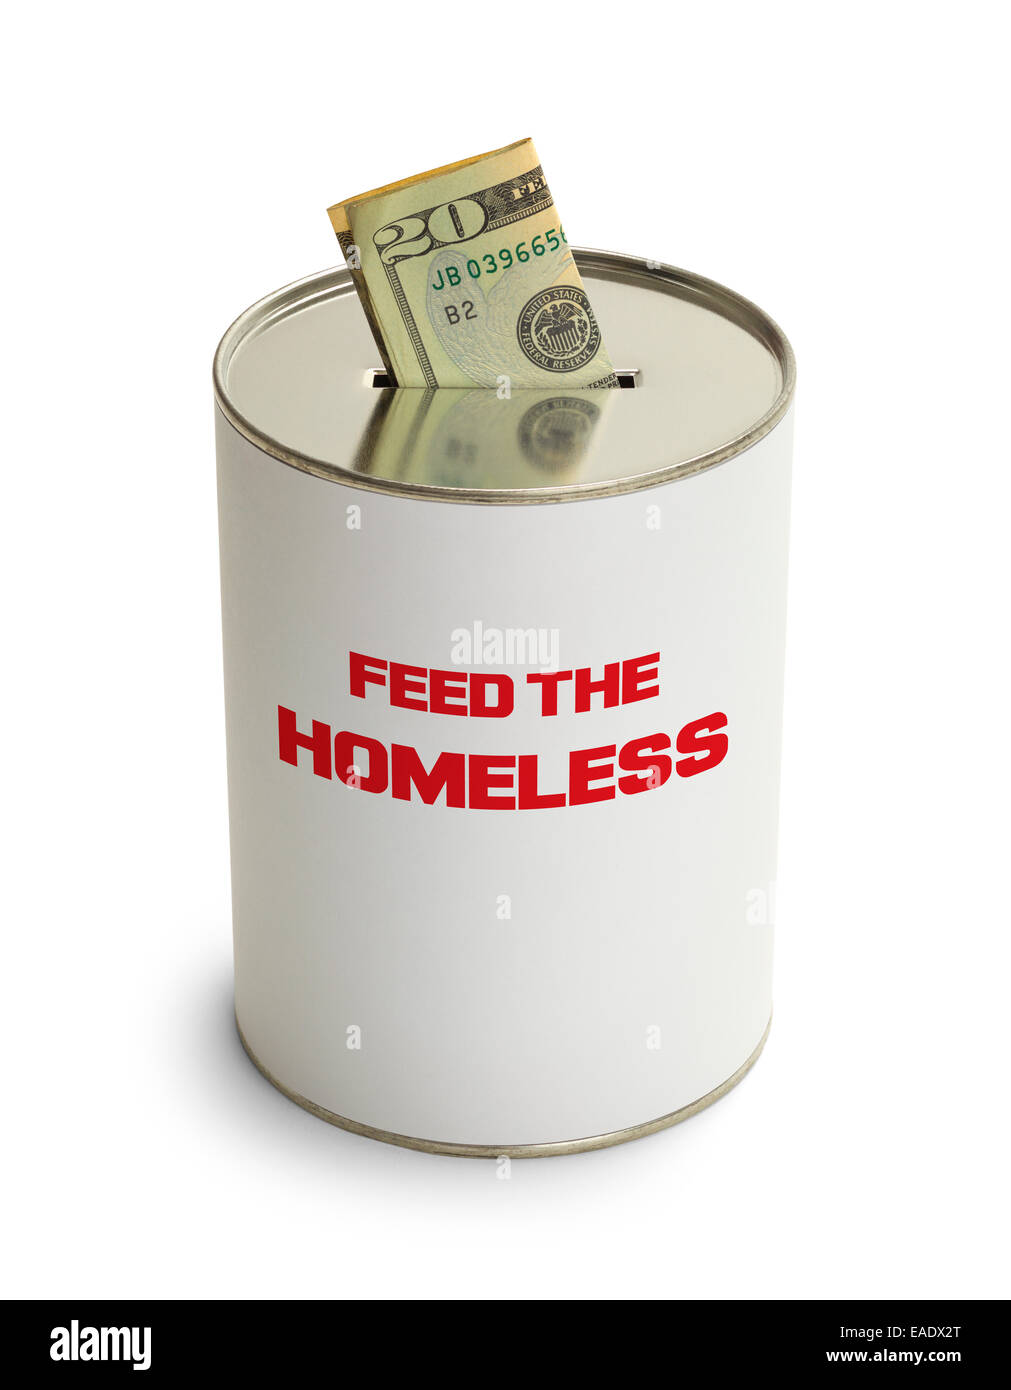 Feed The Homeless Donation Can Isolated on White Background. - Stock Image